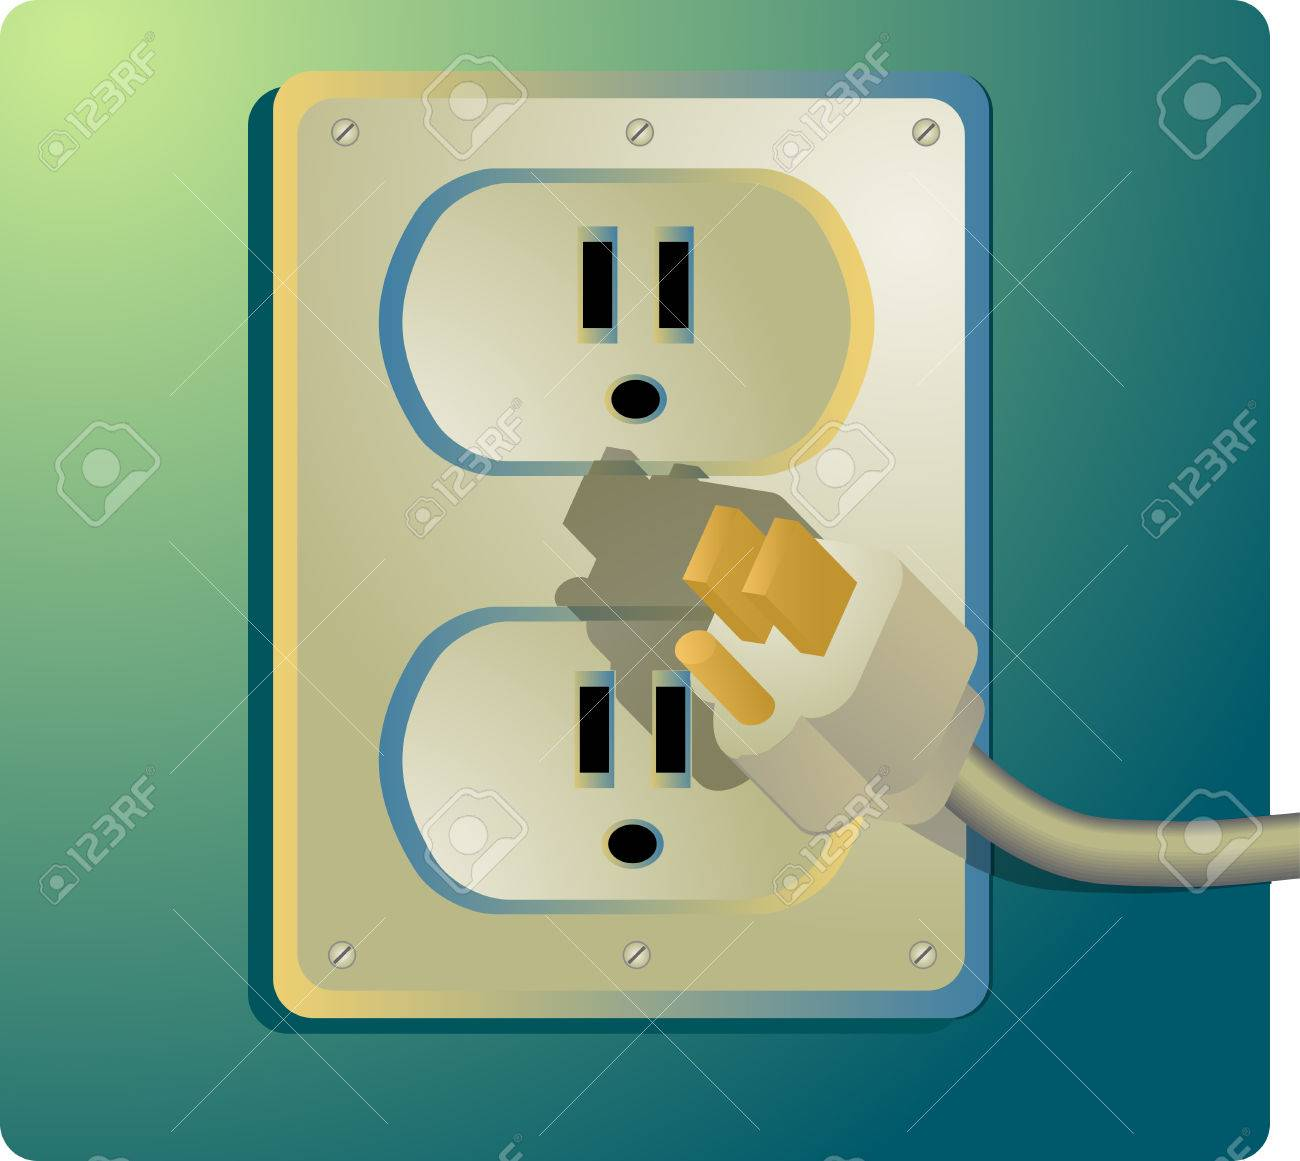 Illustration of a power outlet and plug; US-style outlet Stock Vector - 3279402